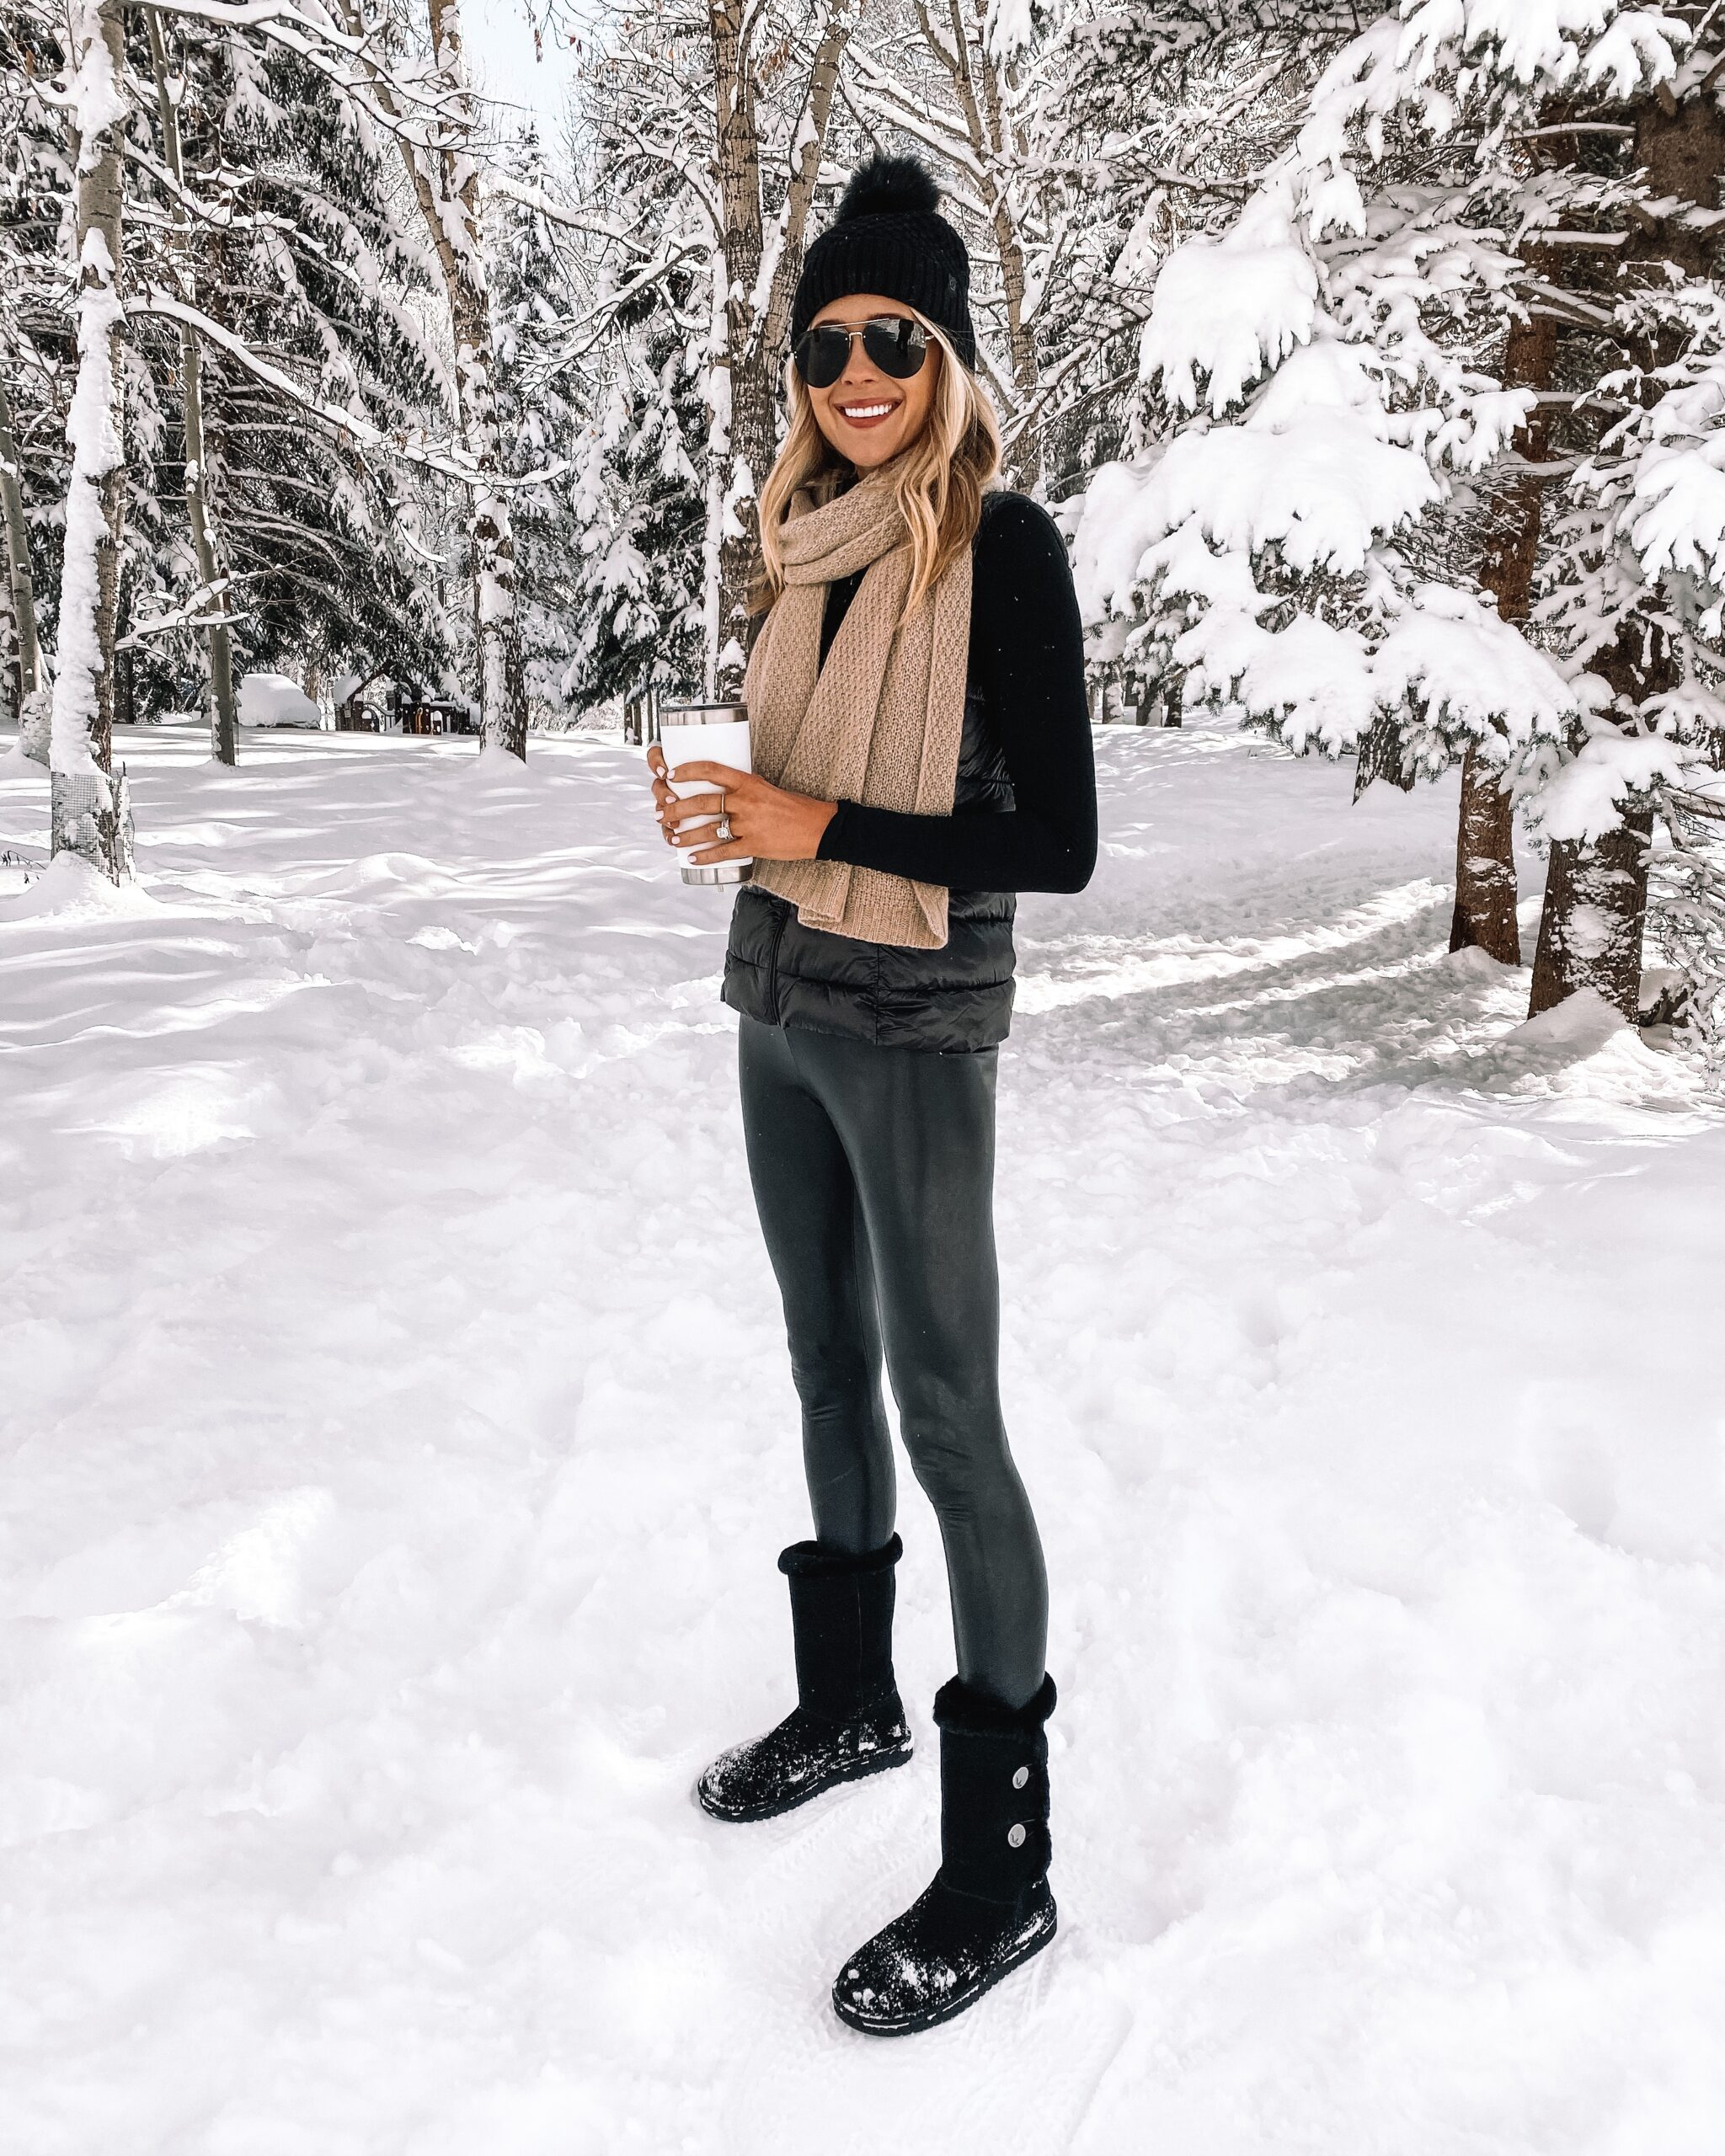 Fashion Jackson Wearing Commando Faux Leather Leggings Winter Outfit Black Puffer Vest Camel Scarf Black Beanie Black Snow Boots